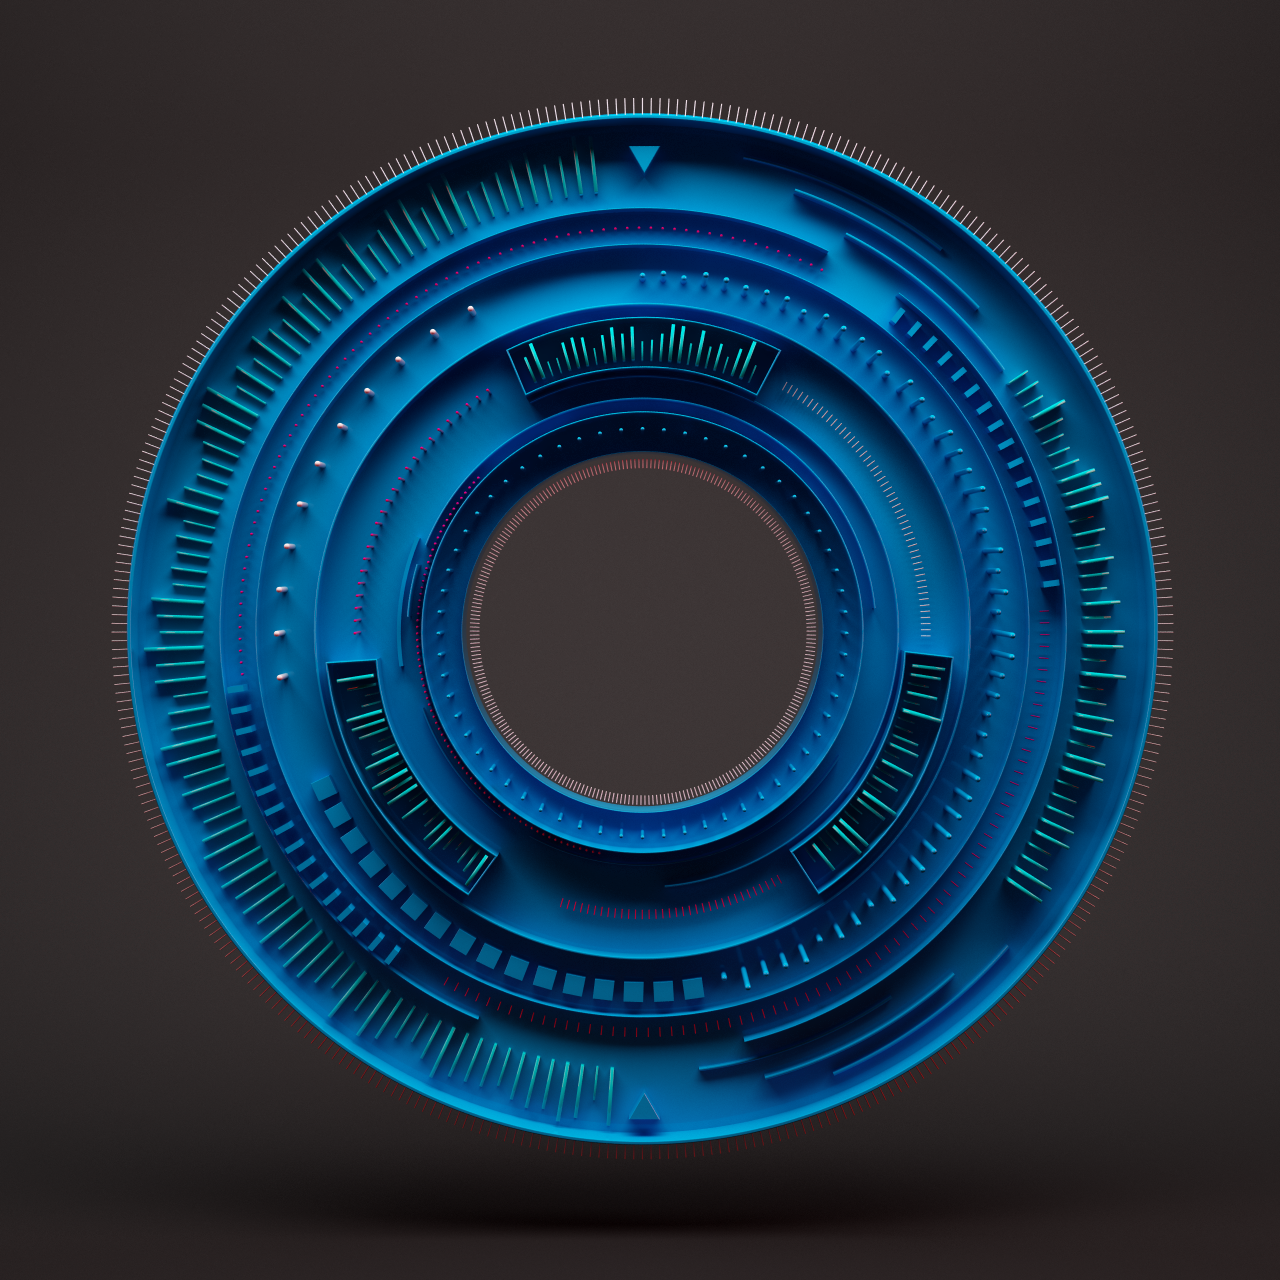 digital_eye_vray_01.png